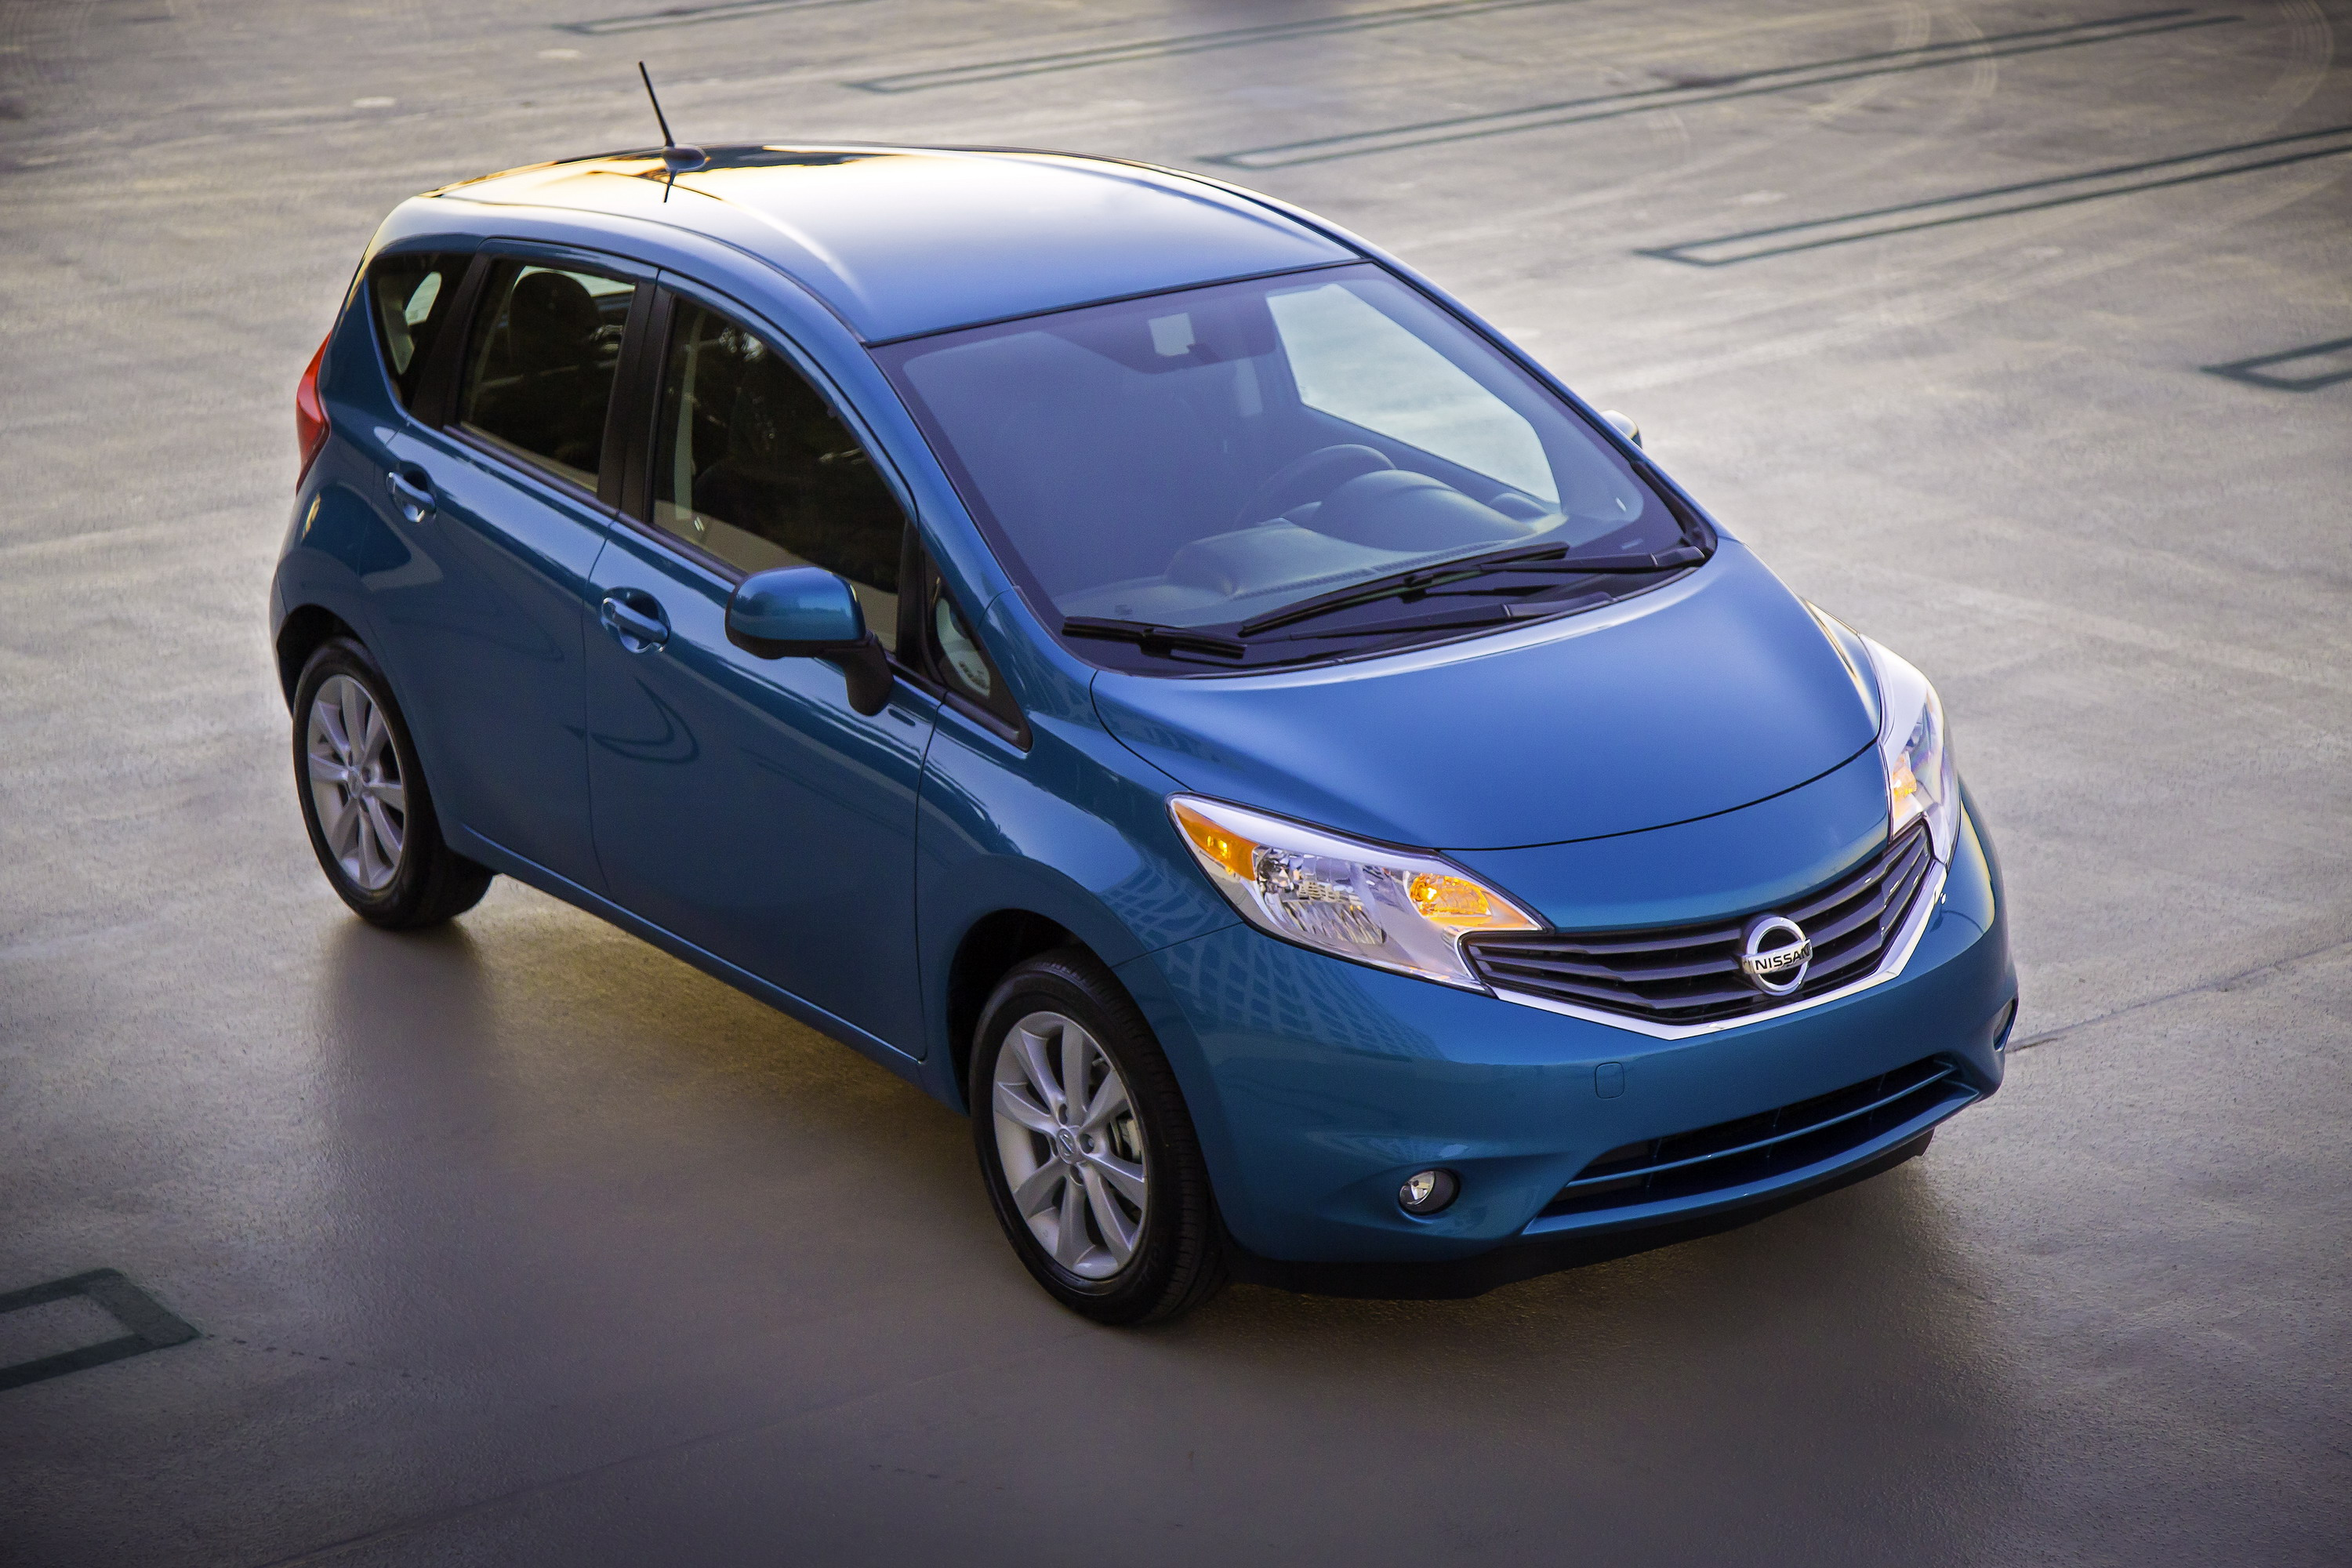 2014 nissan versa note review top speed. Black Bedroom Furniture Sets. Home Design Ideas